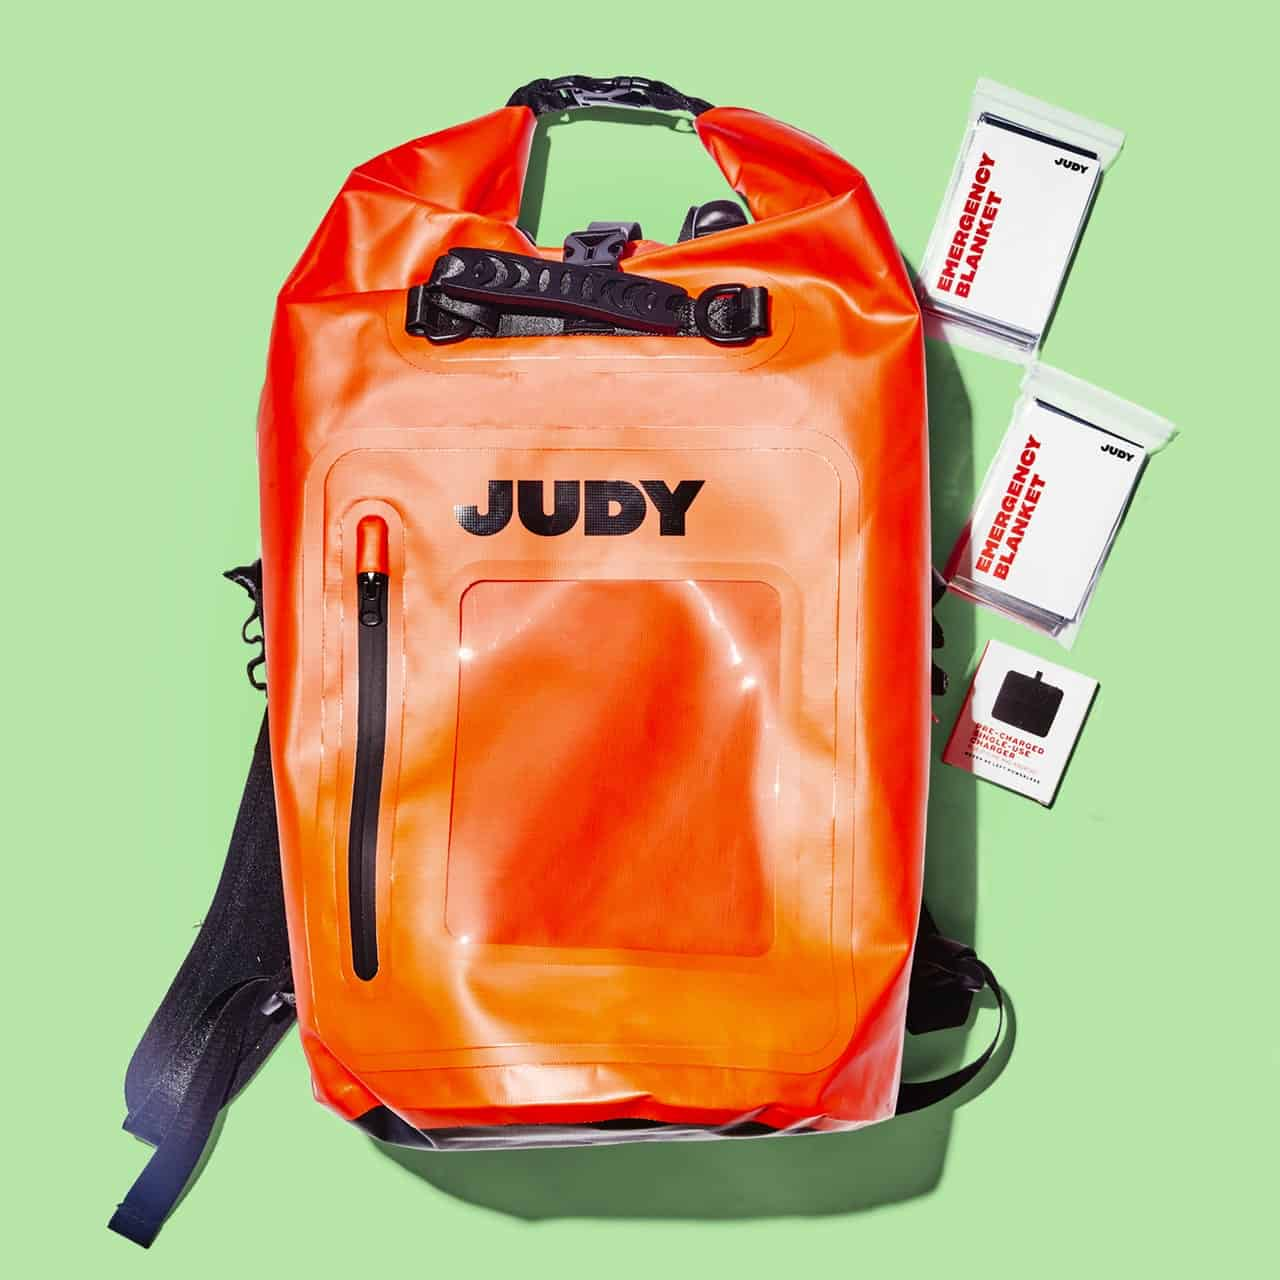 this disaster kit helps me feel prepared for anything